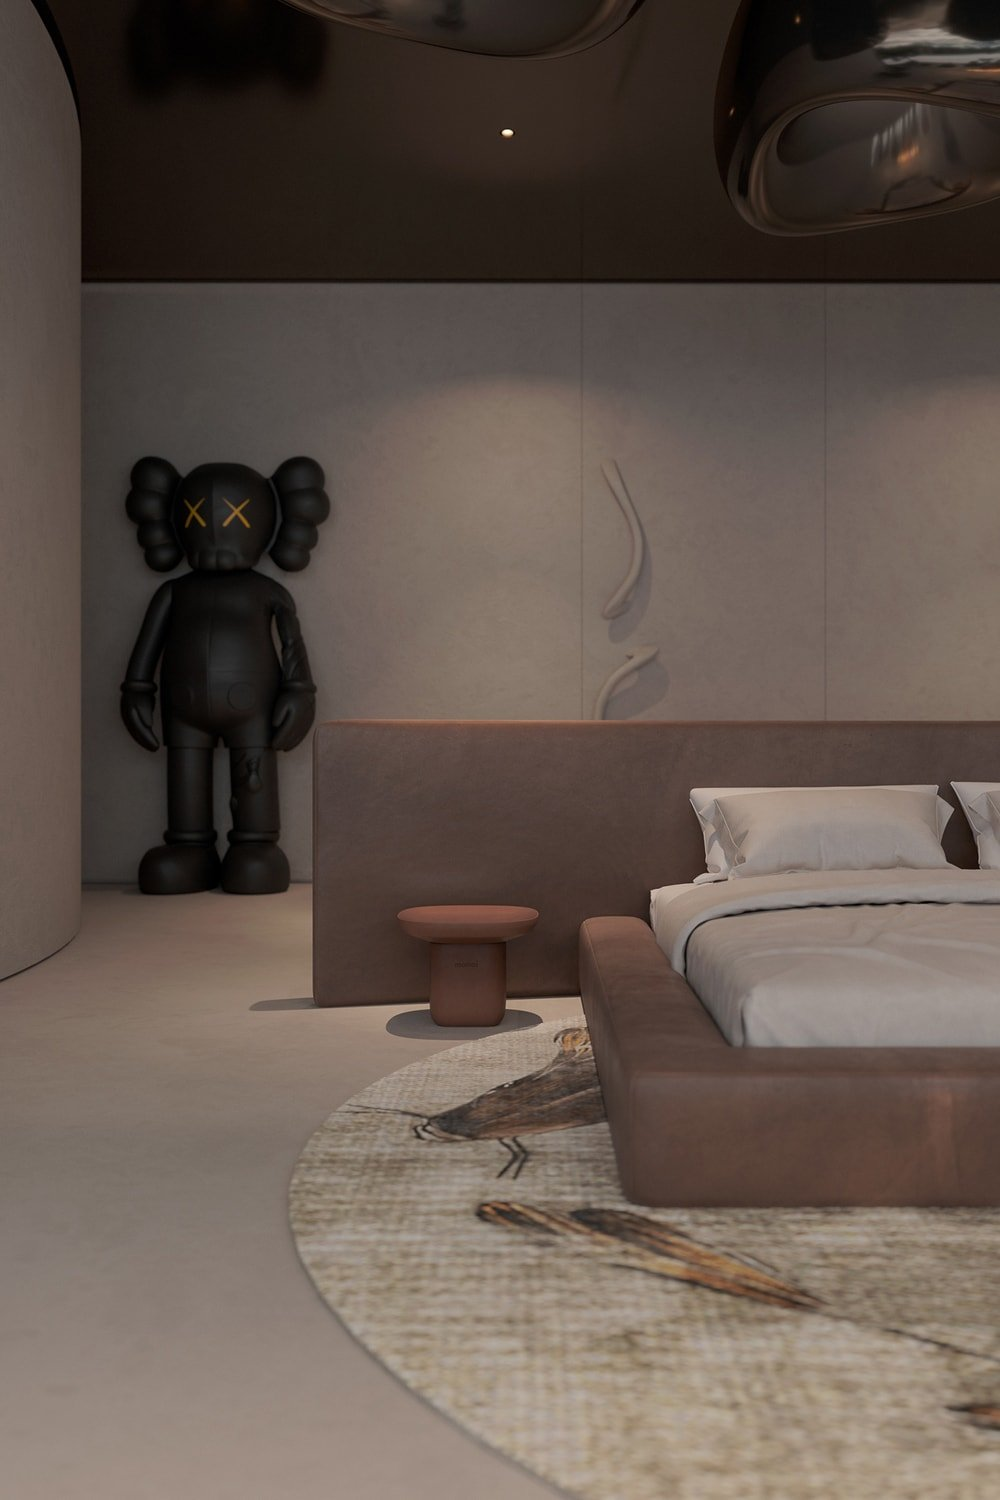 At the corner of the bedroom is a large statue that stands out against the wall with its dark tone. You can also see here the large area rug underneath the bed.